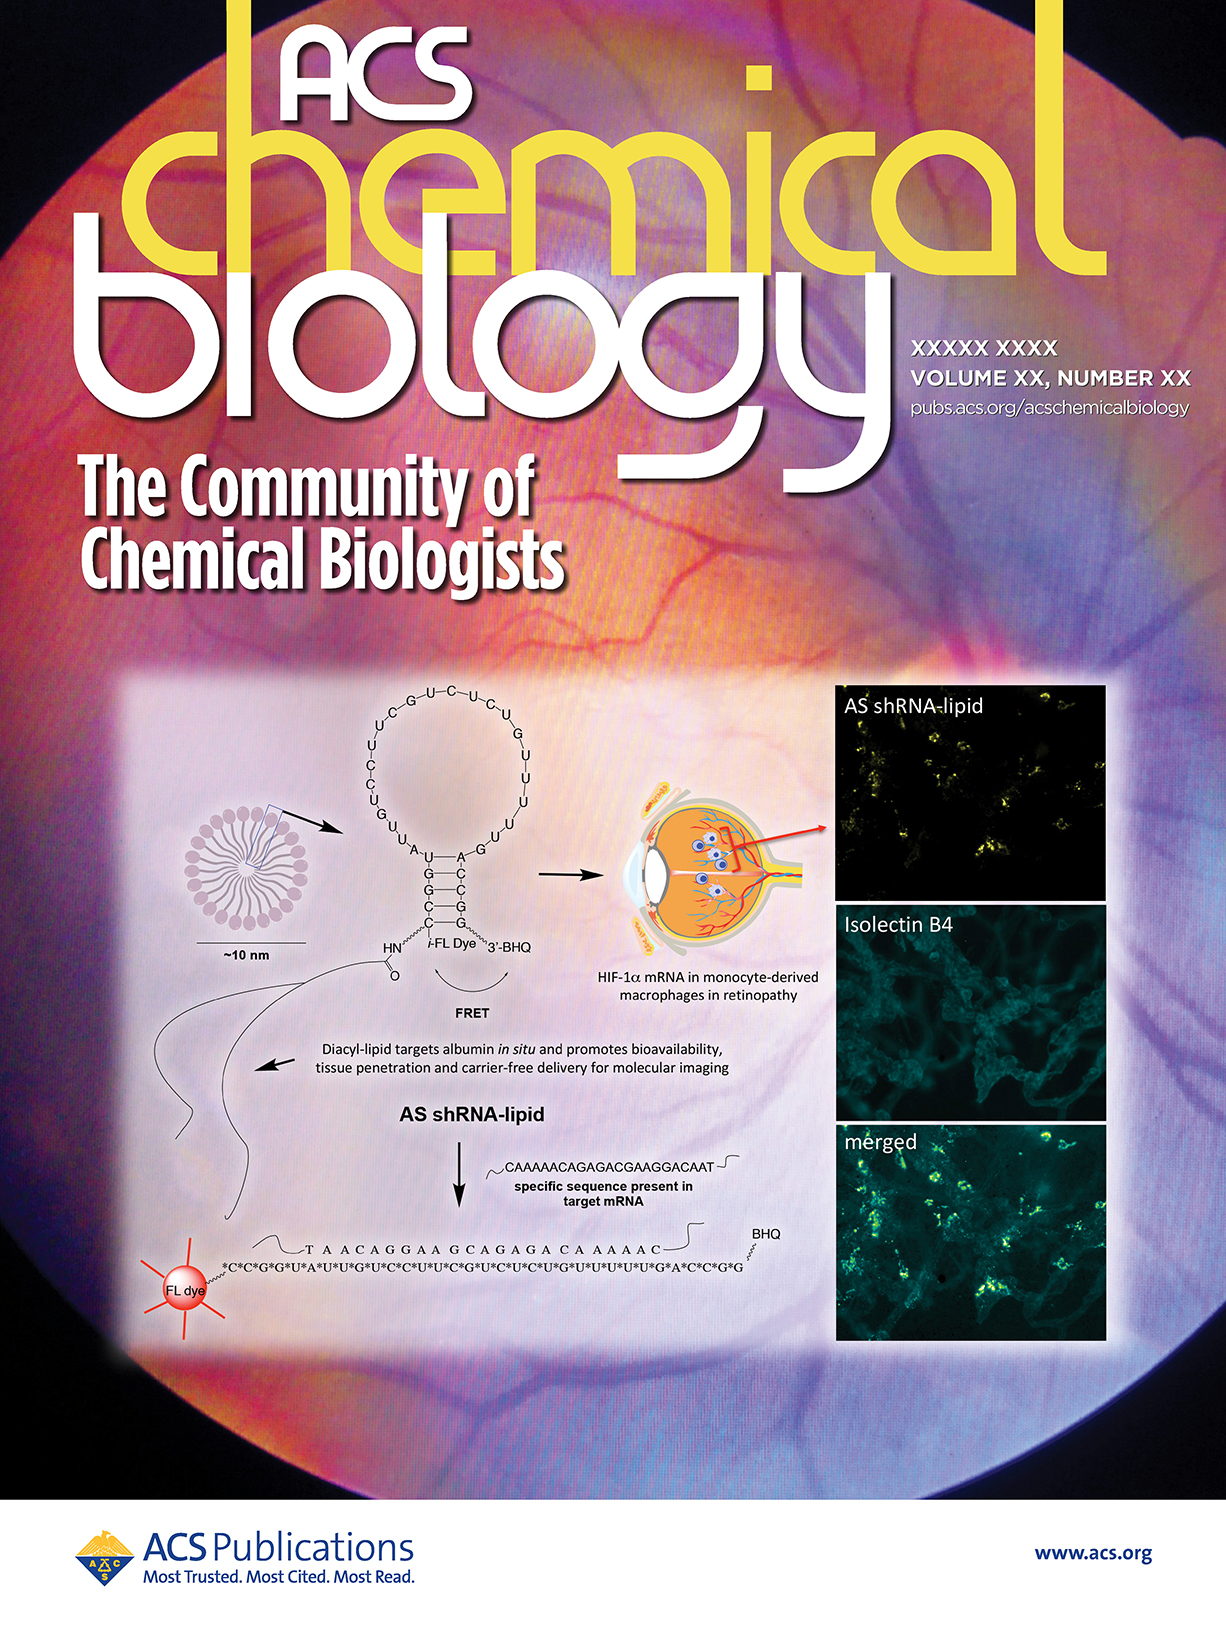 Selective visualization of monocyte-derived macrophages could be a powerful method to predict the onset and progression of ocular-angiogenesis at molecular level. In this report the authors described the synthesis of a new hybrid nanoparticle to visualize HIF-1a mRNA selectively in monocyte-derived macrophages in a mouse model of ocular-angiogenesis (neovascularization).